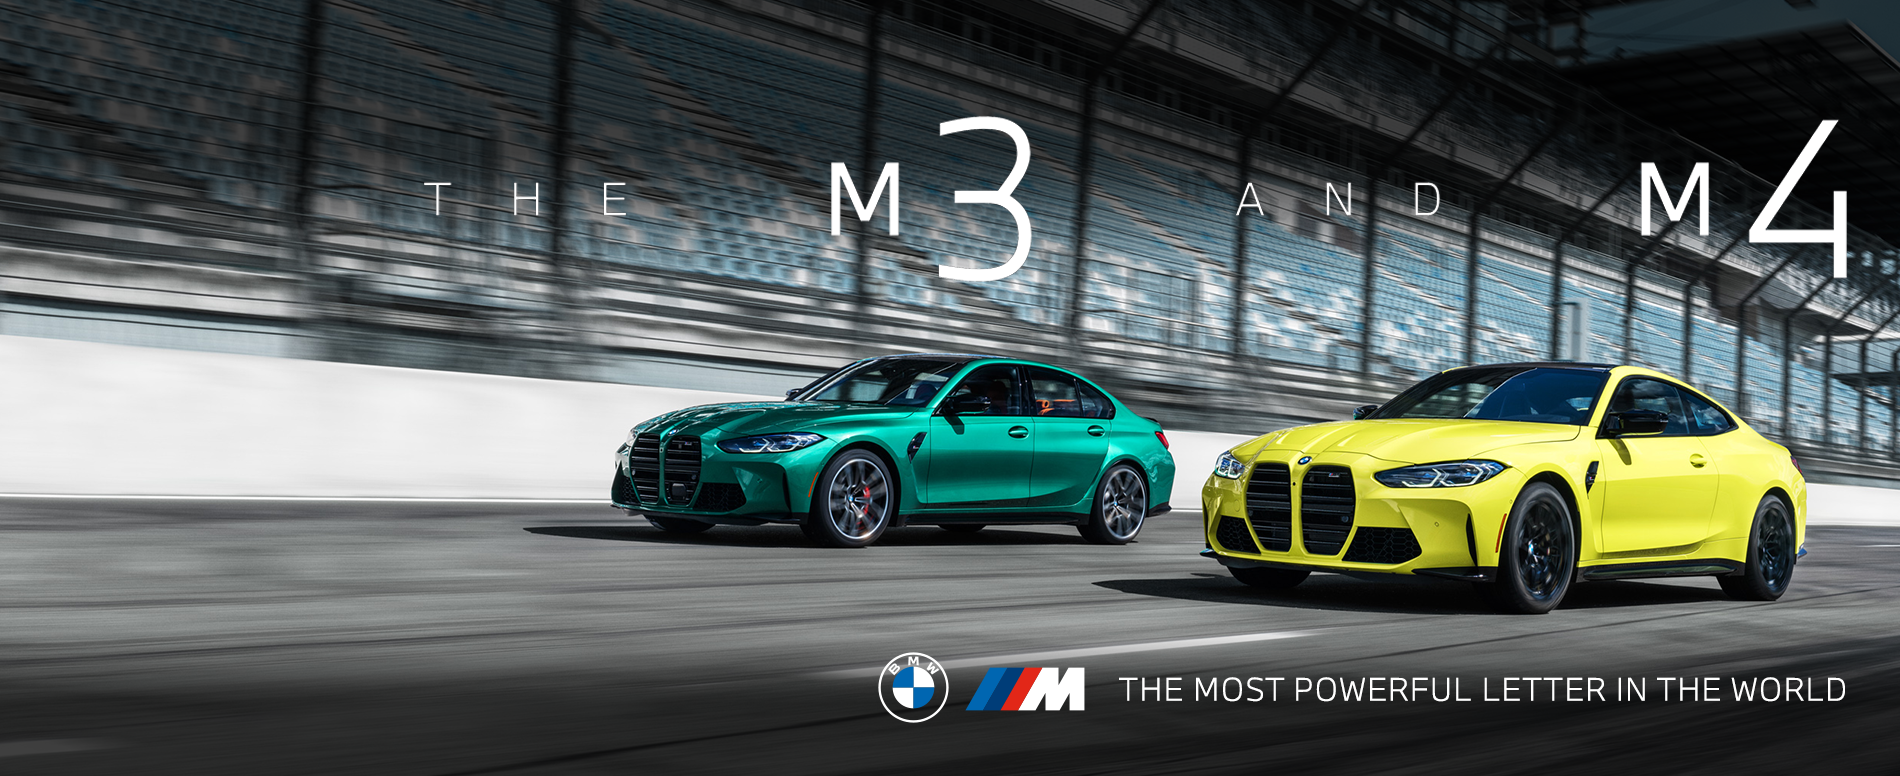 The All-New BMW M3 and M4 driving down a racetrack